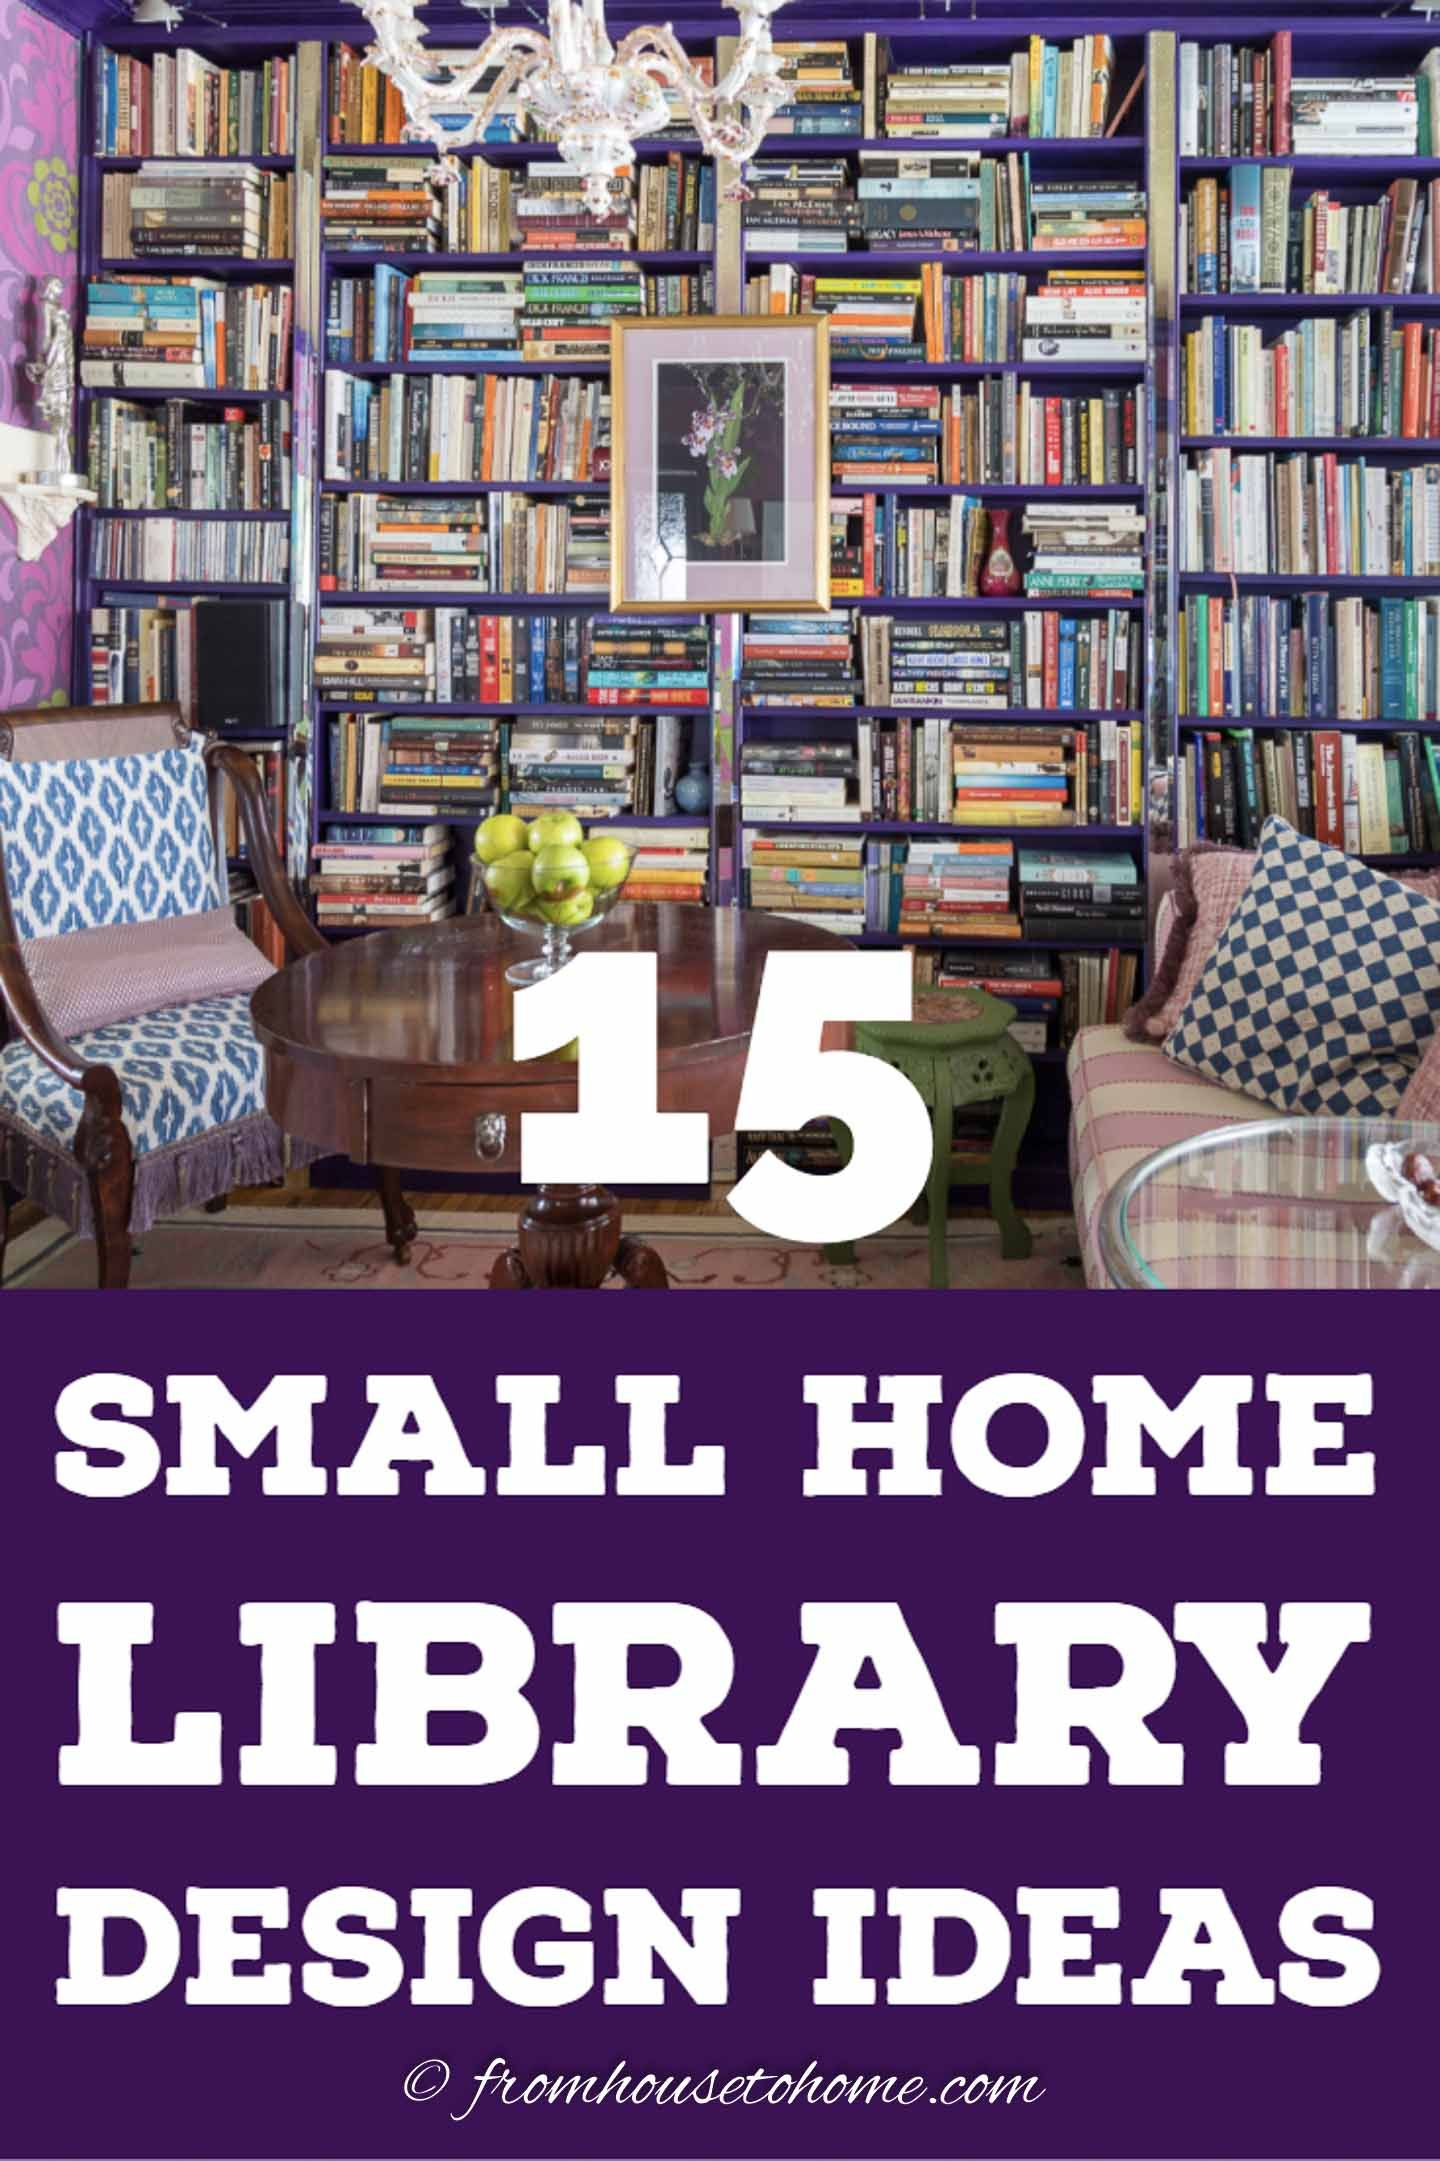 Cozy Reading Room Ideas: 15 Creative Small Home Library